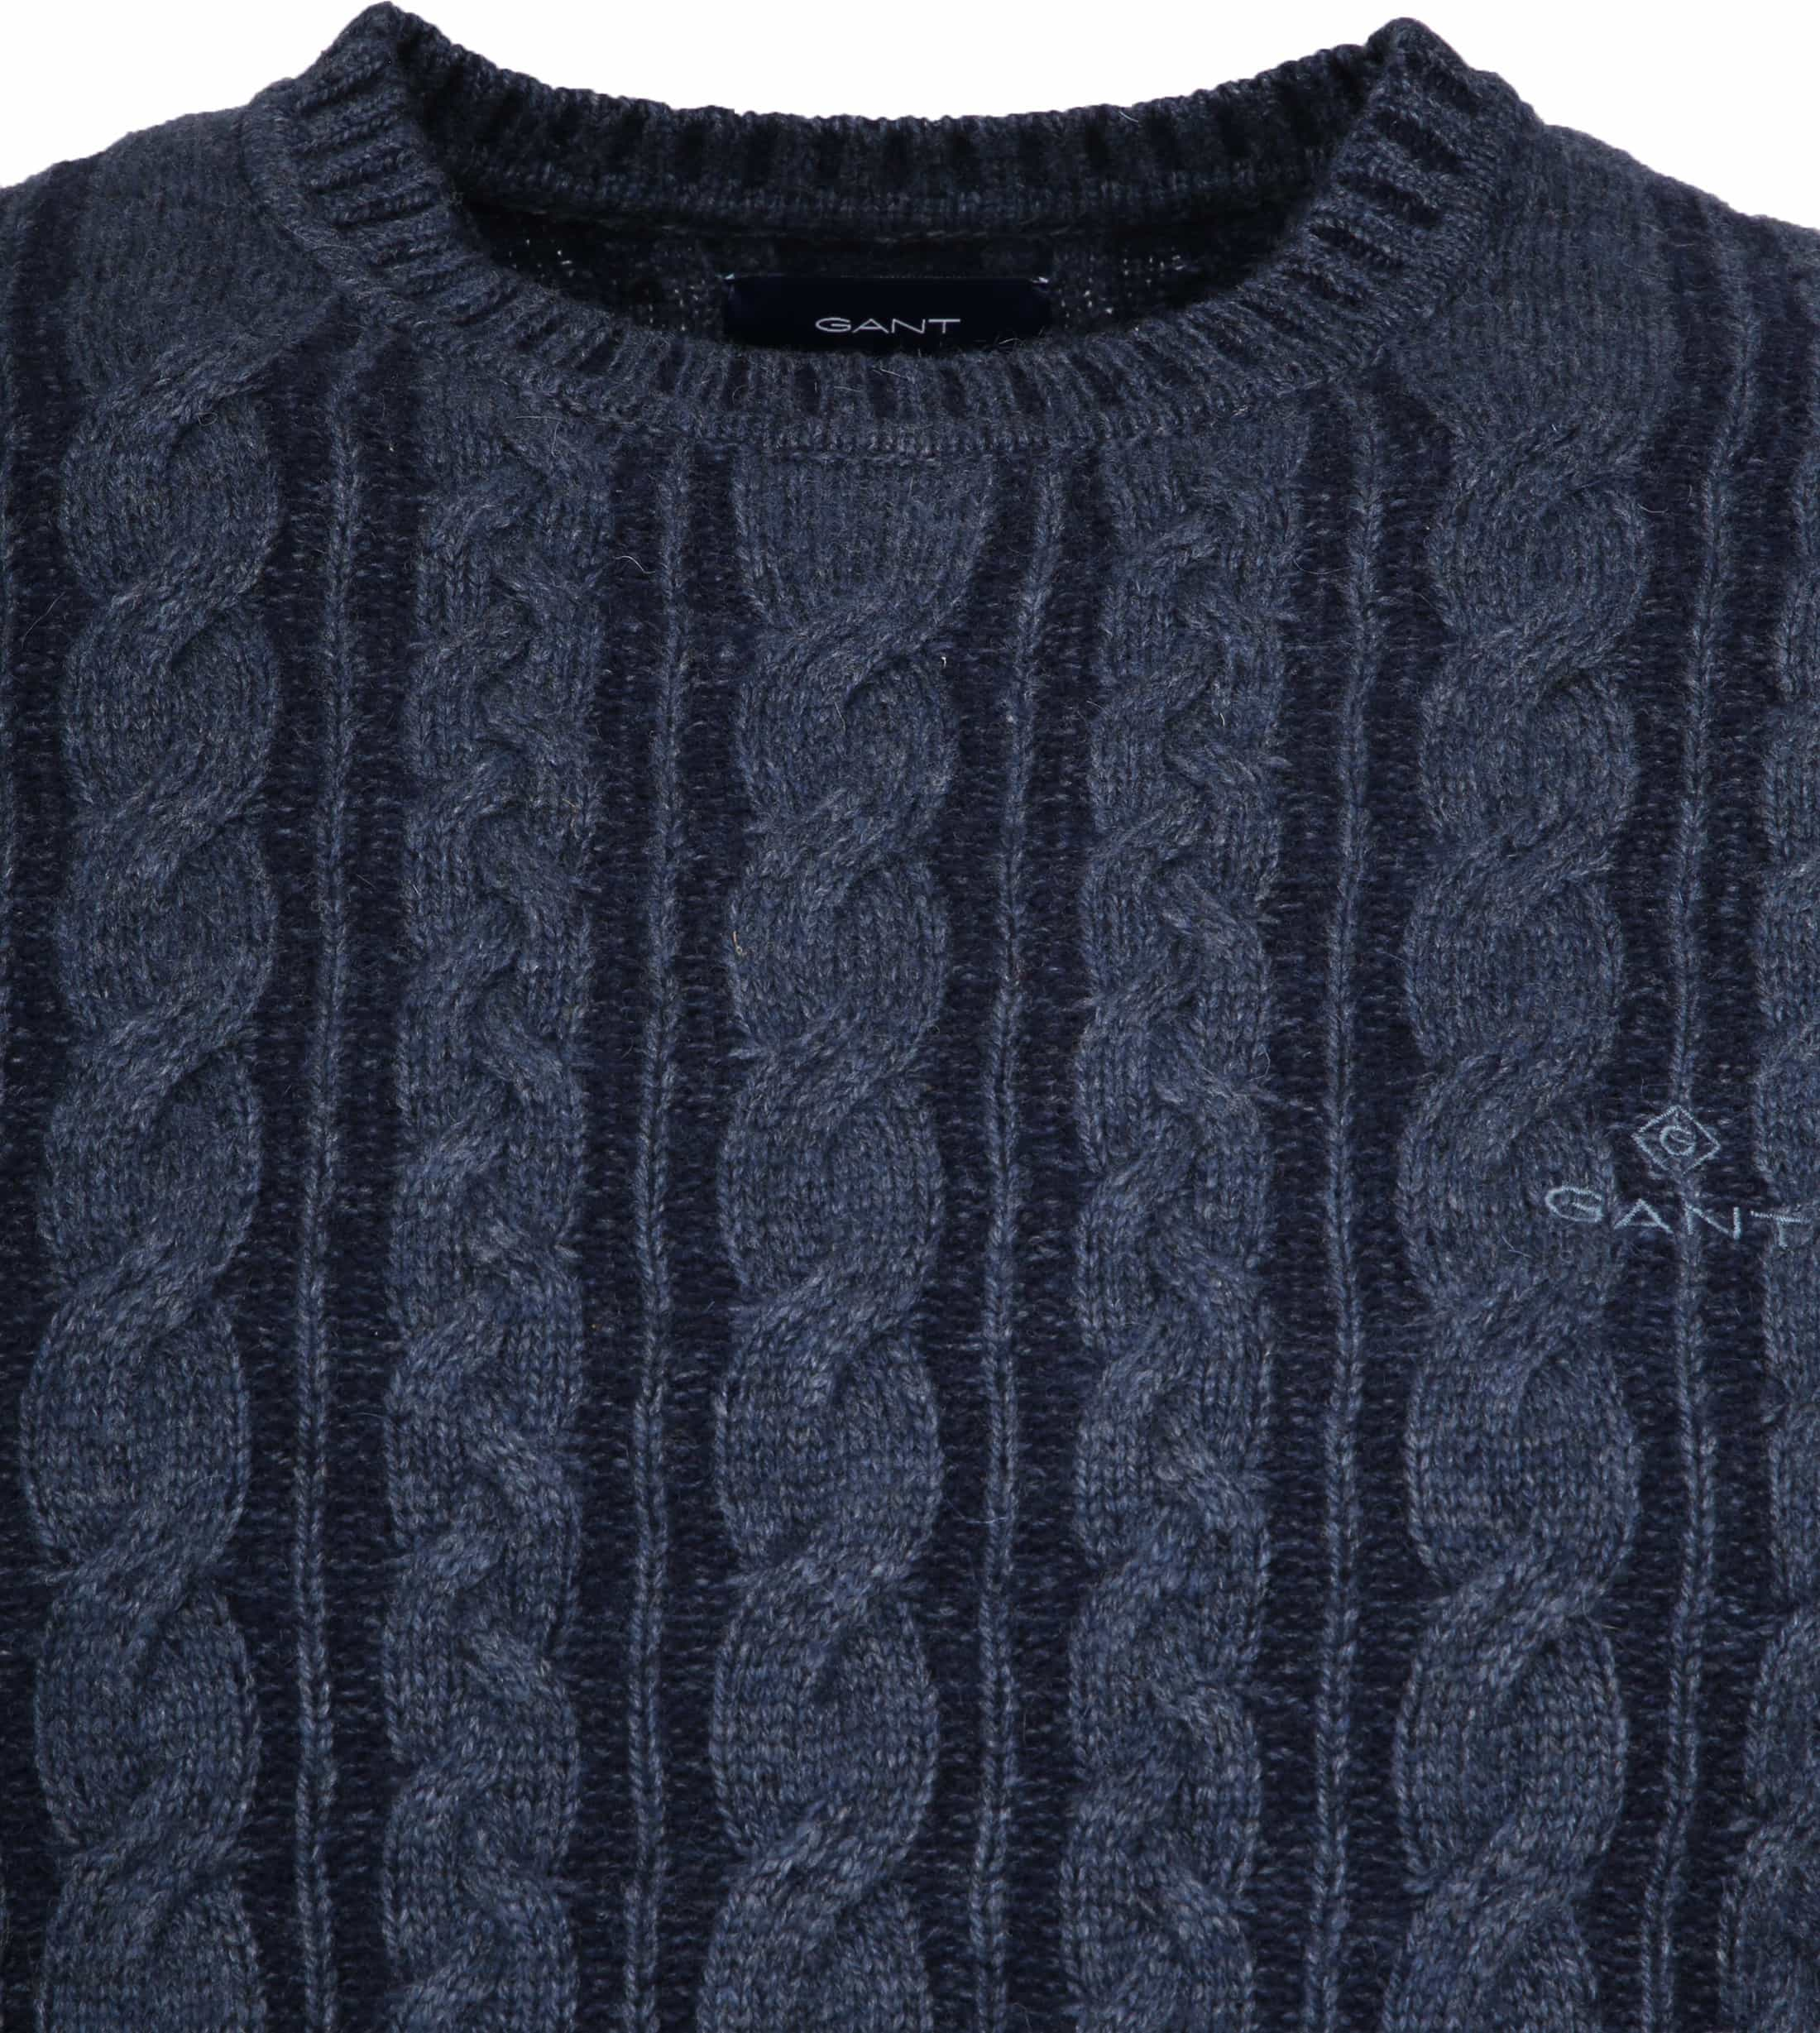 Gant Heavy Cable Pullover Navy foto 1